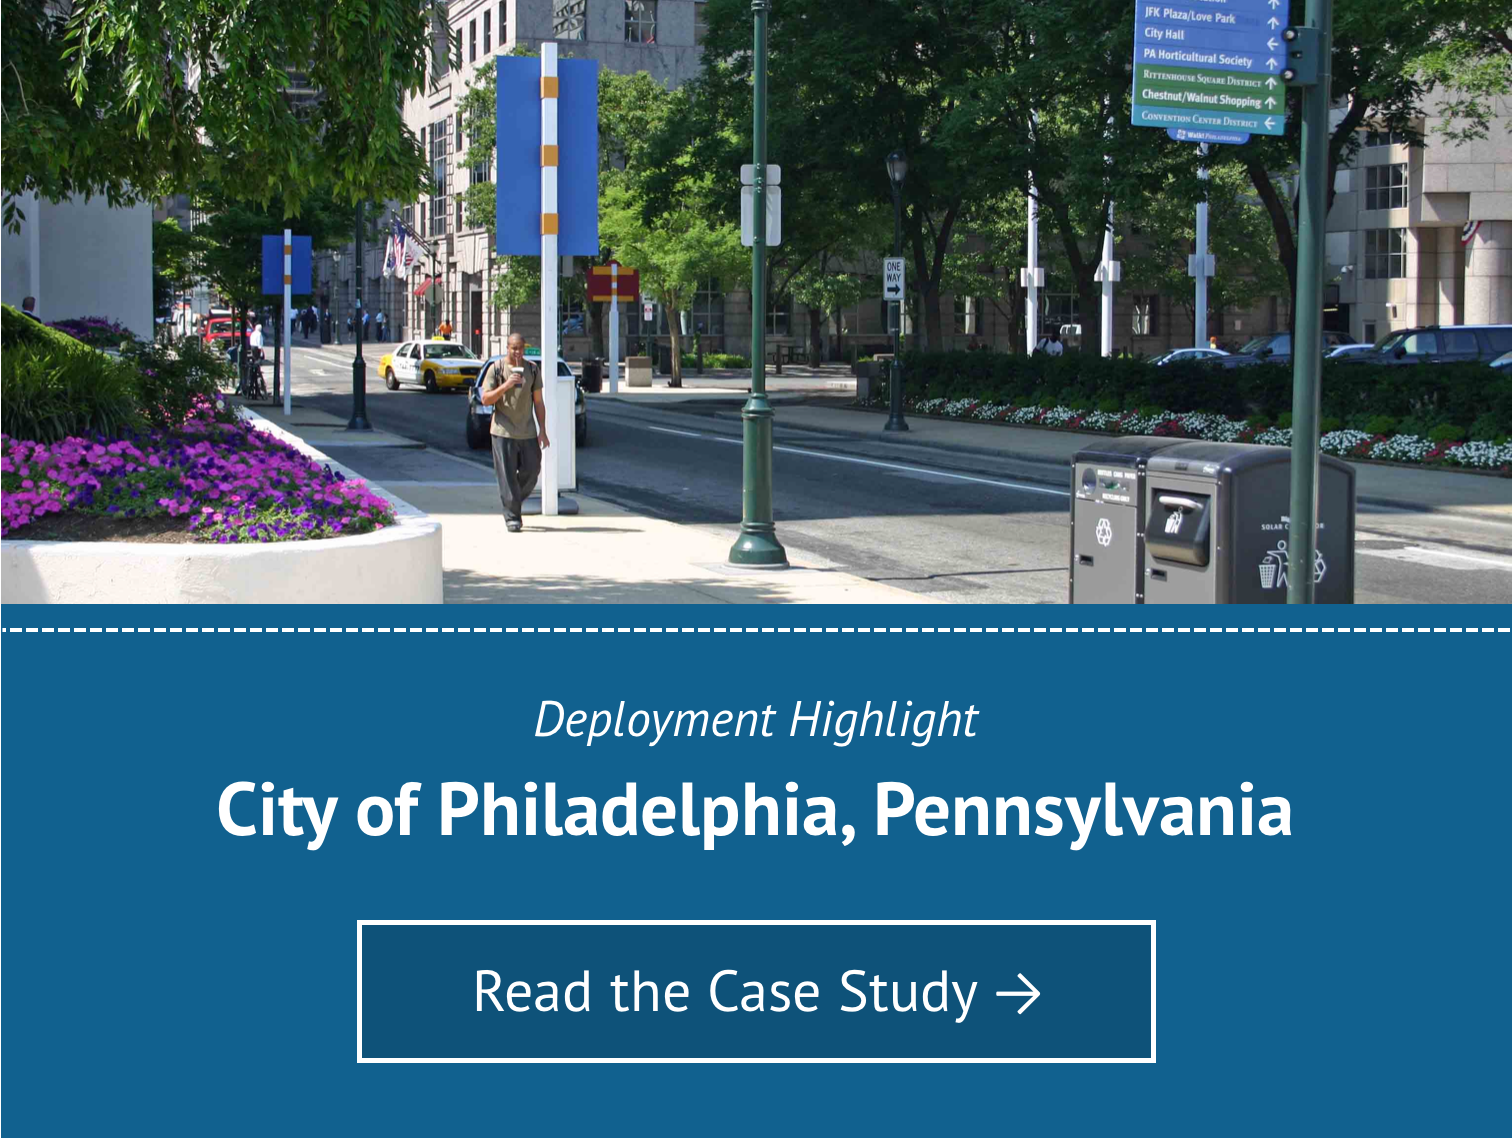 Deployment Highlight for City of Philadelphia - Read the Case Study